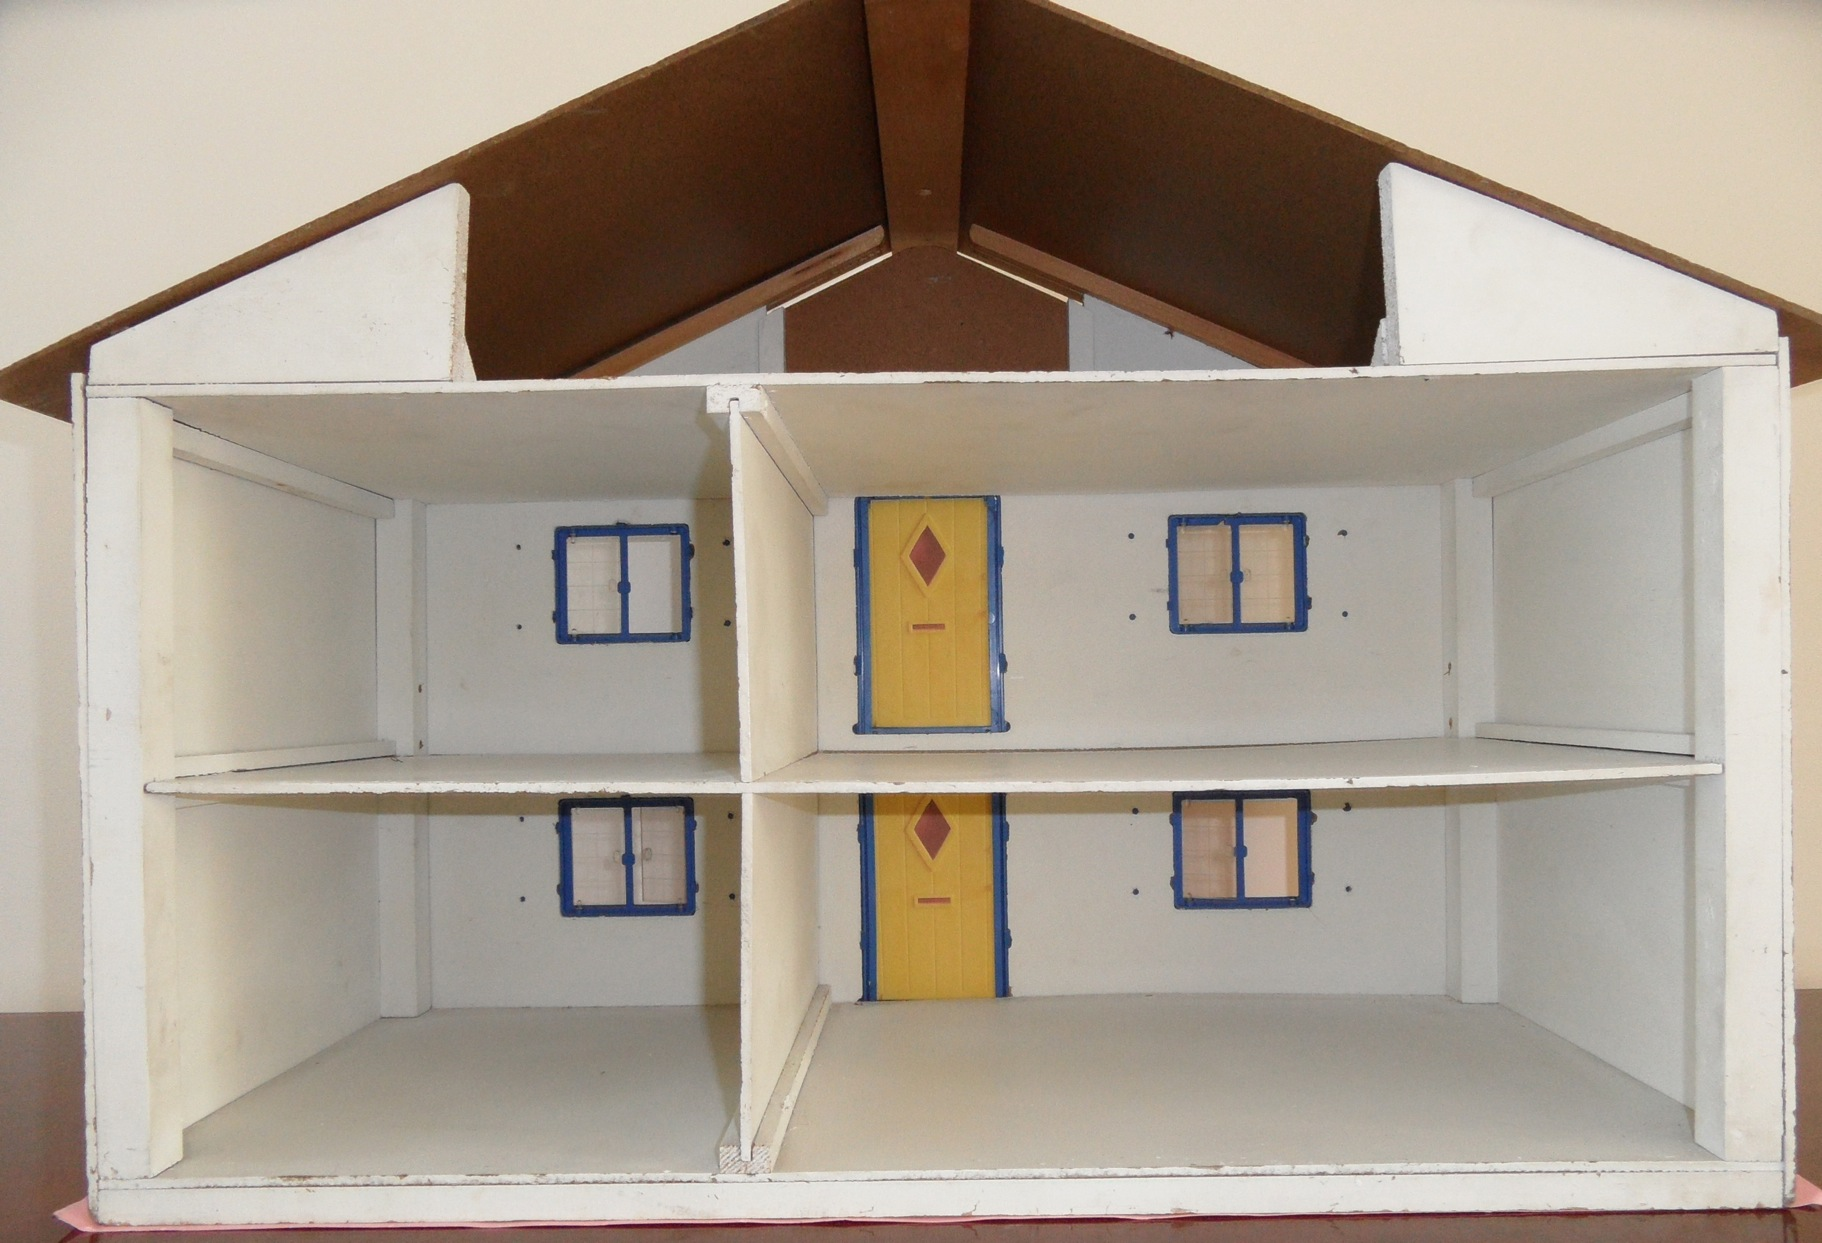 chalet dolls houses by rebecca green dolls houses past present